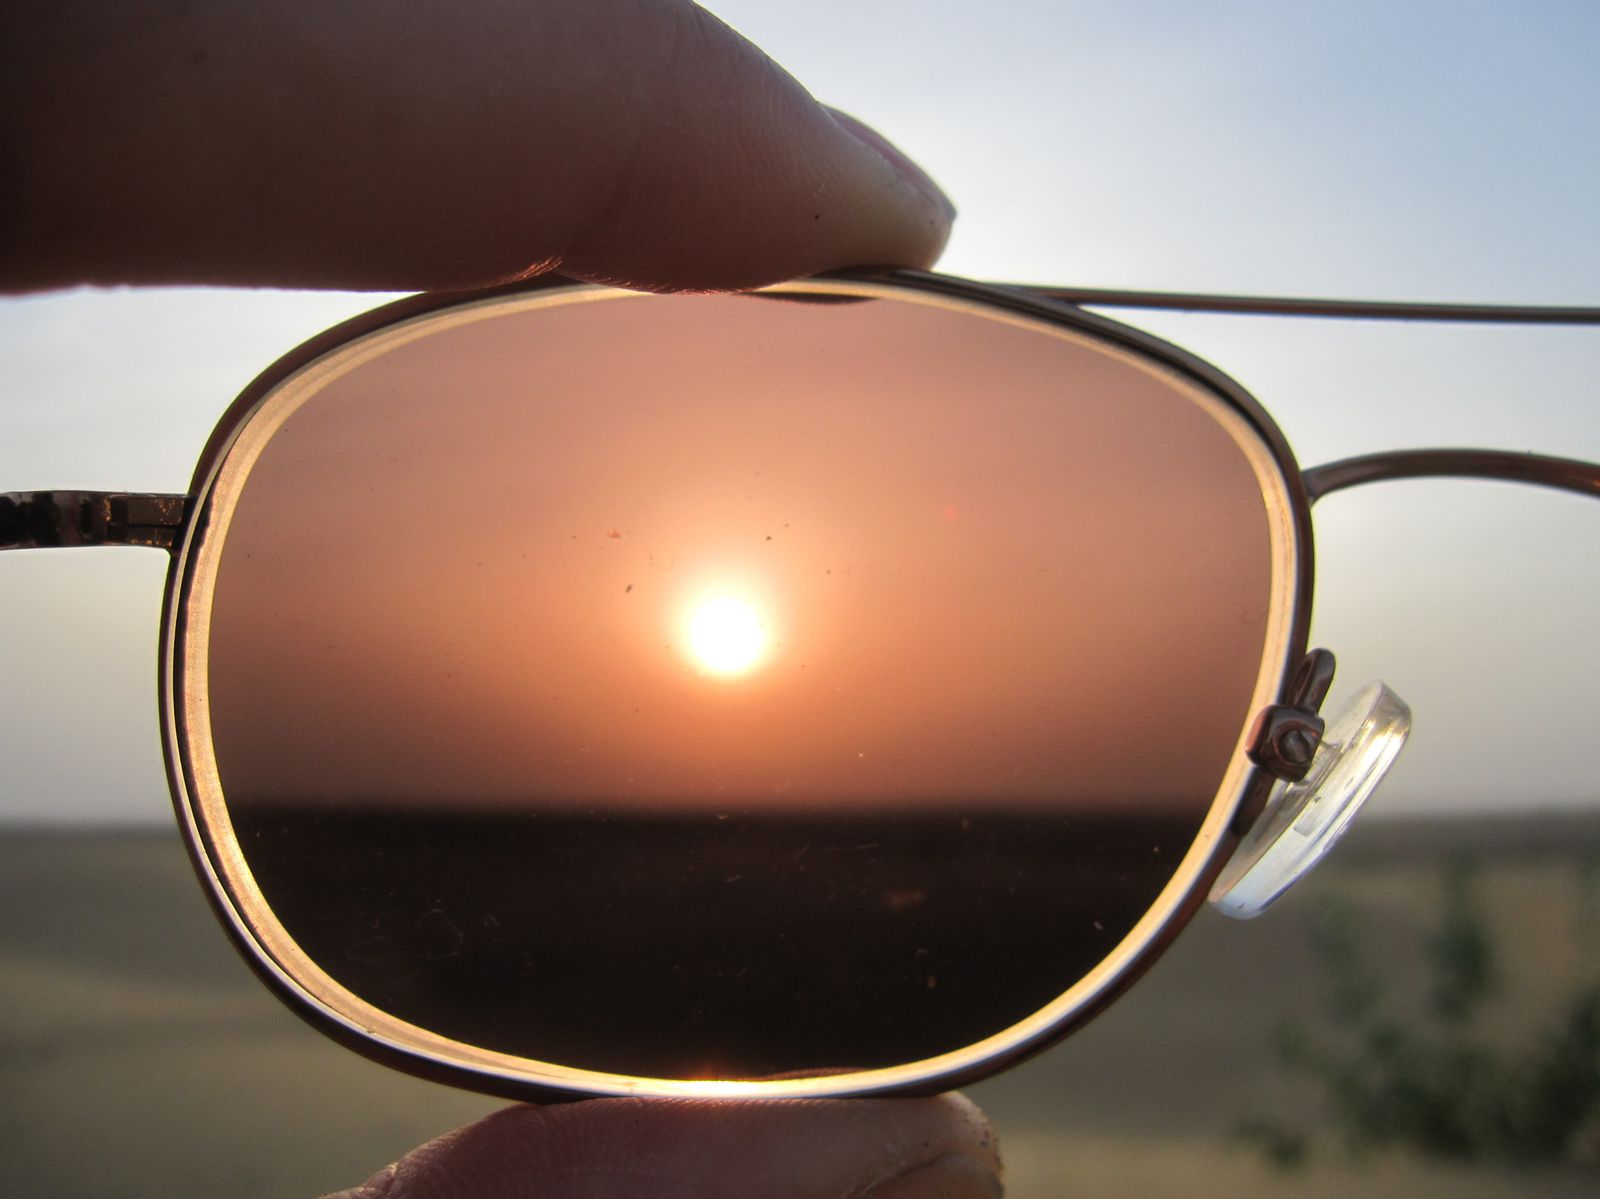 Sunrise through glasses